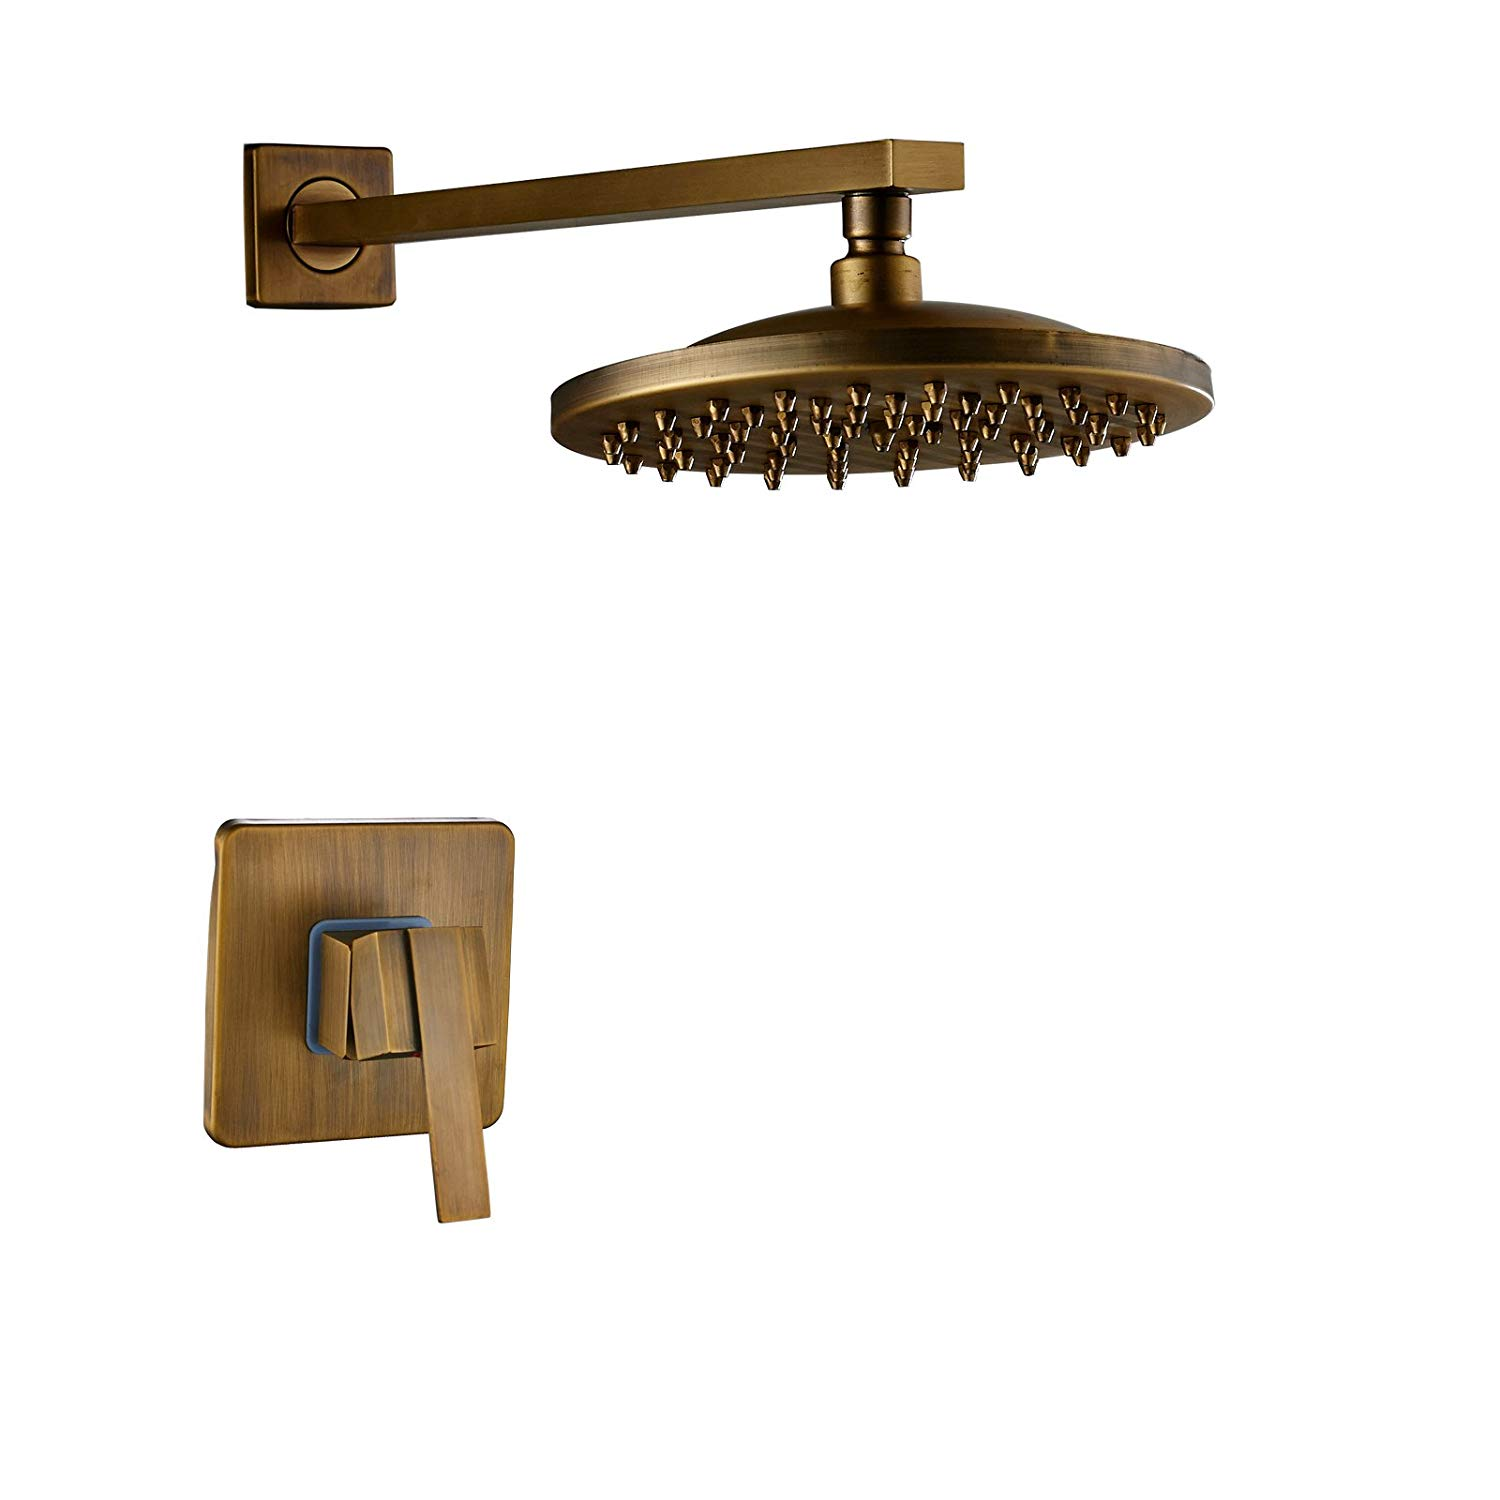 Rozin Antique Brass One-Model Mixer Control 8-inch Rainfall Shower Head Wall Mounted